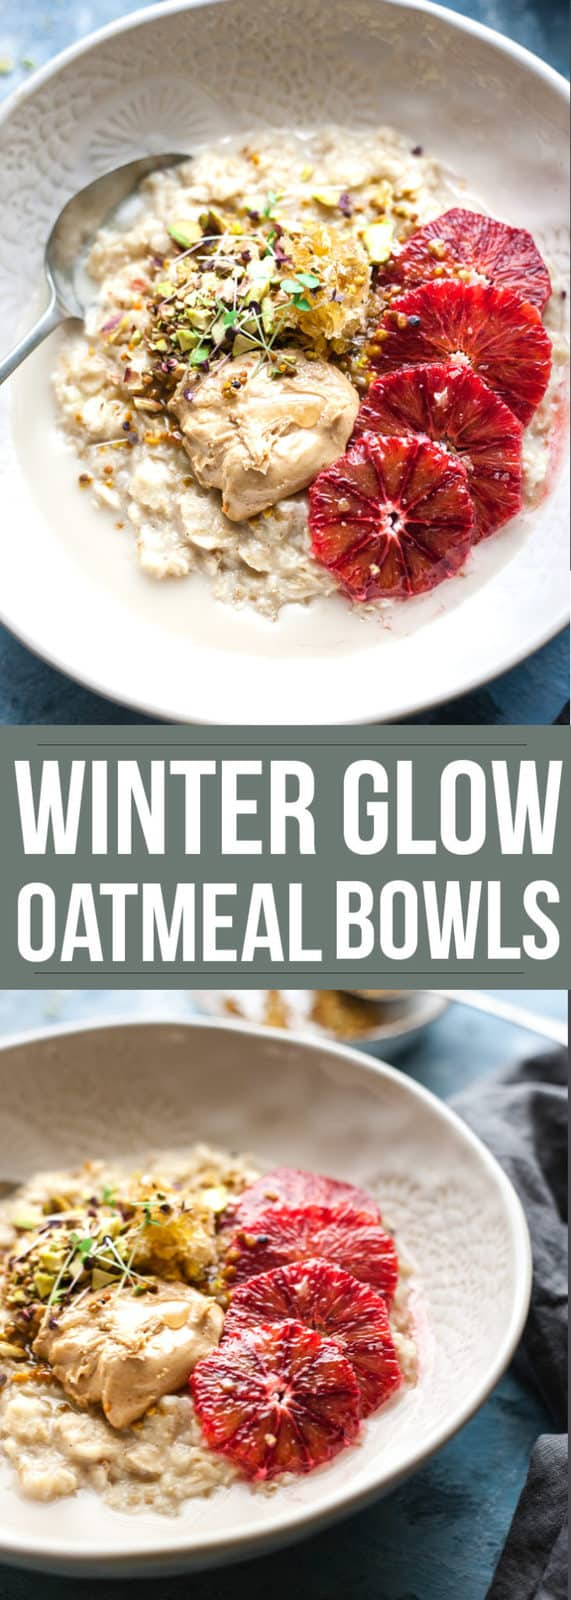 Oatmeal is the perfect warm, nourishing and healthy breakfast that's so cosy for the middle of winter. Loaded with healthy toppings this ho-hum breakfast staple is turned into something quick and easy. #oatmeal #breakfast #easybreakfast